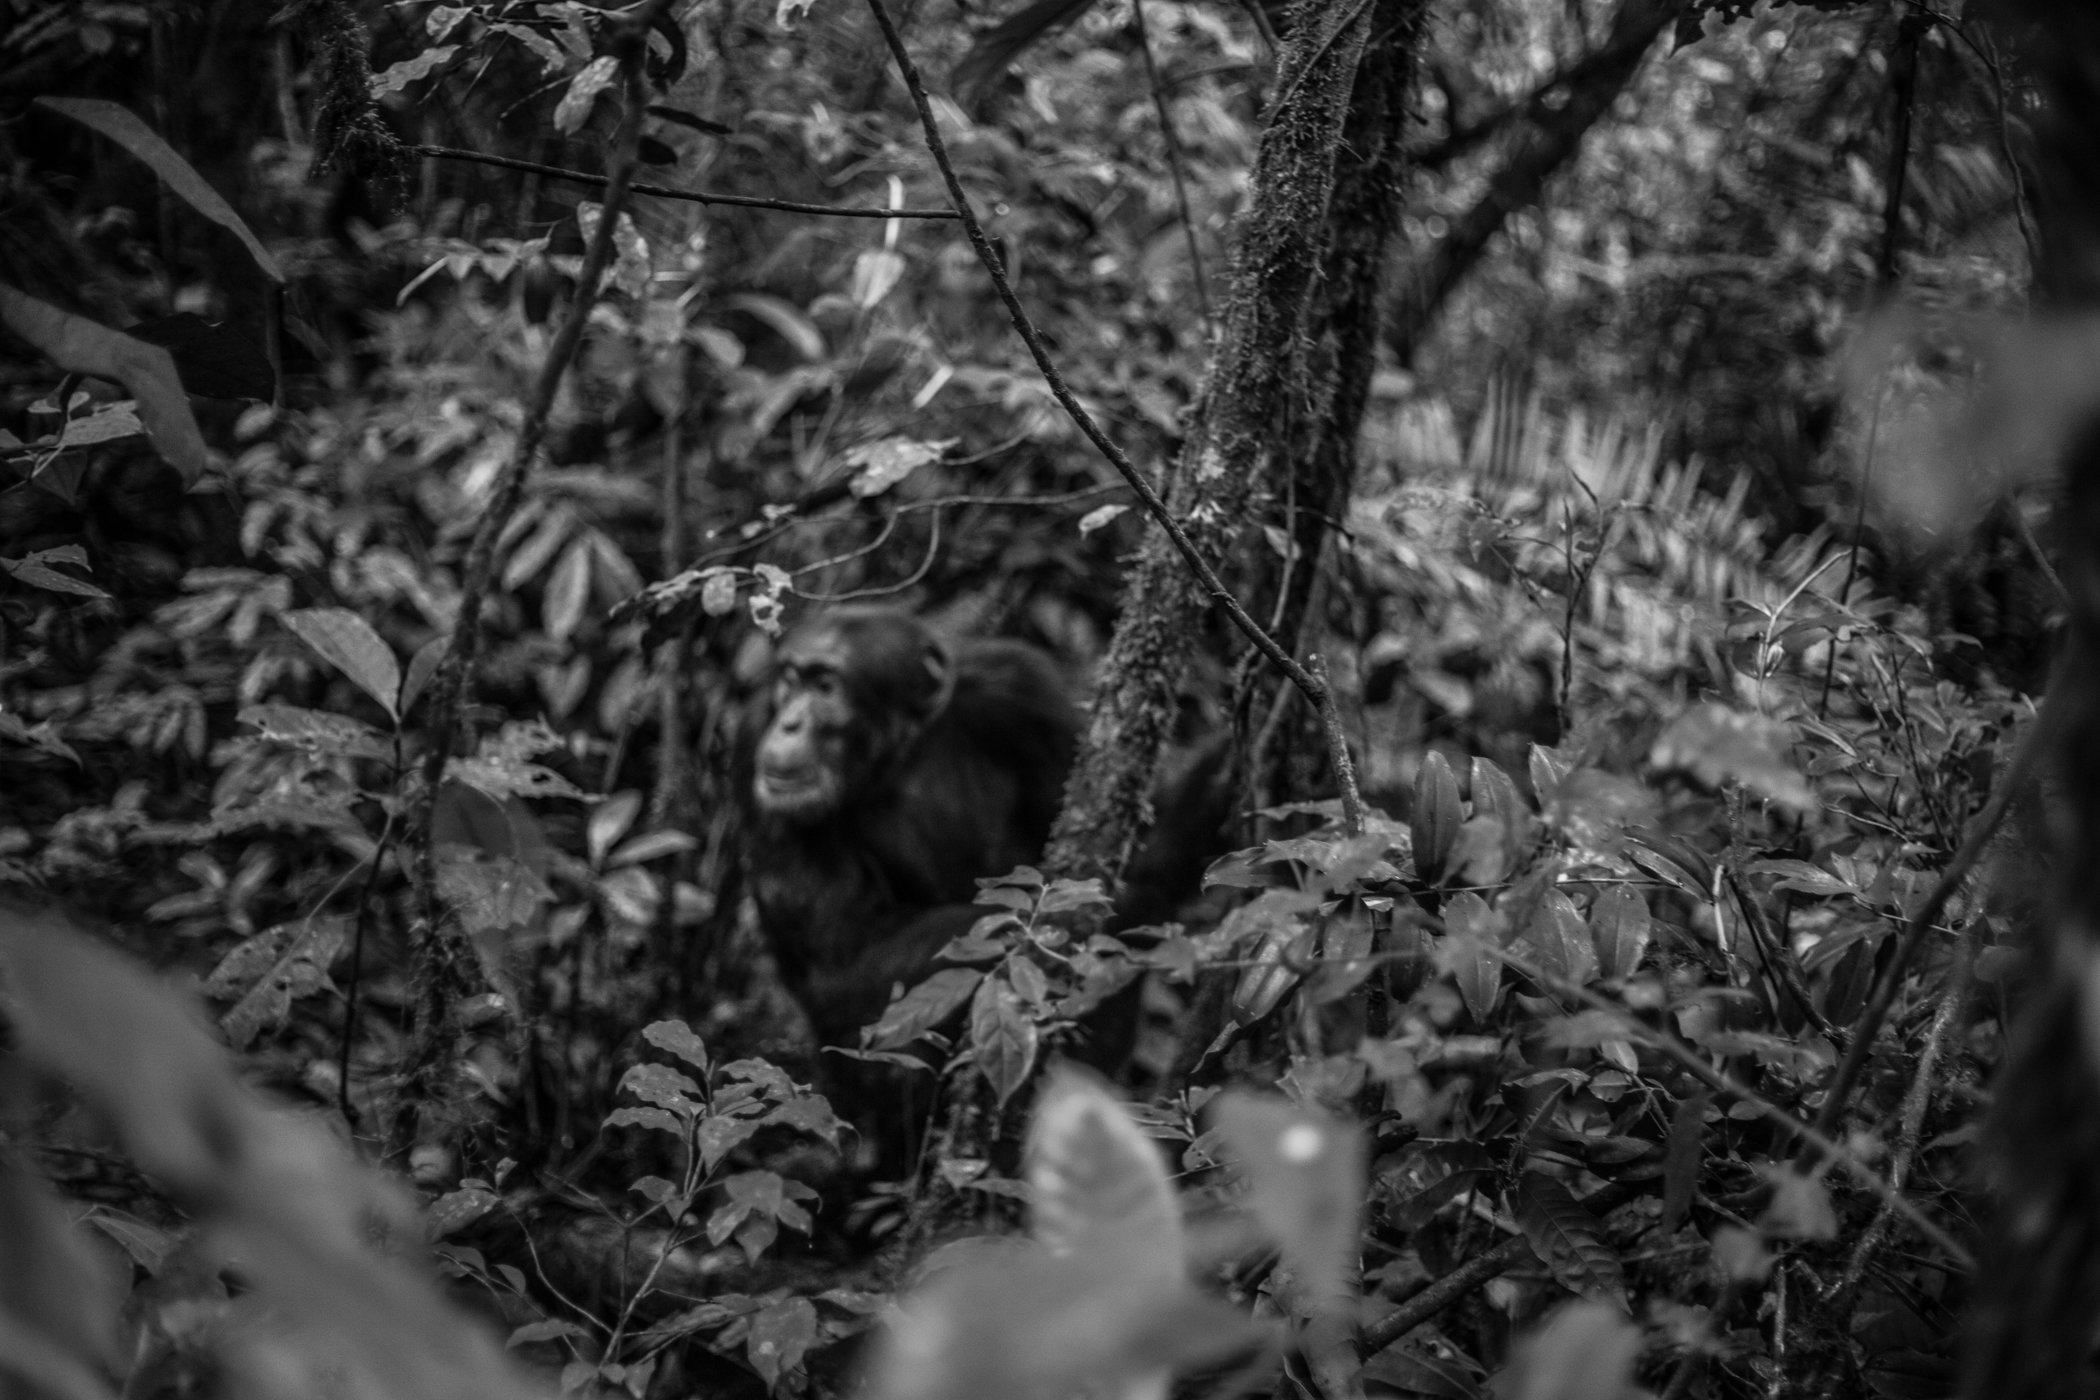 Chimp_Forest_Uganda-IMG_1265-untitled.jpg